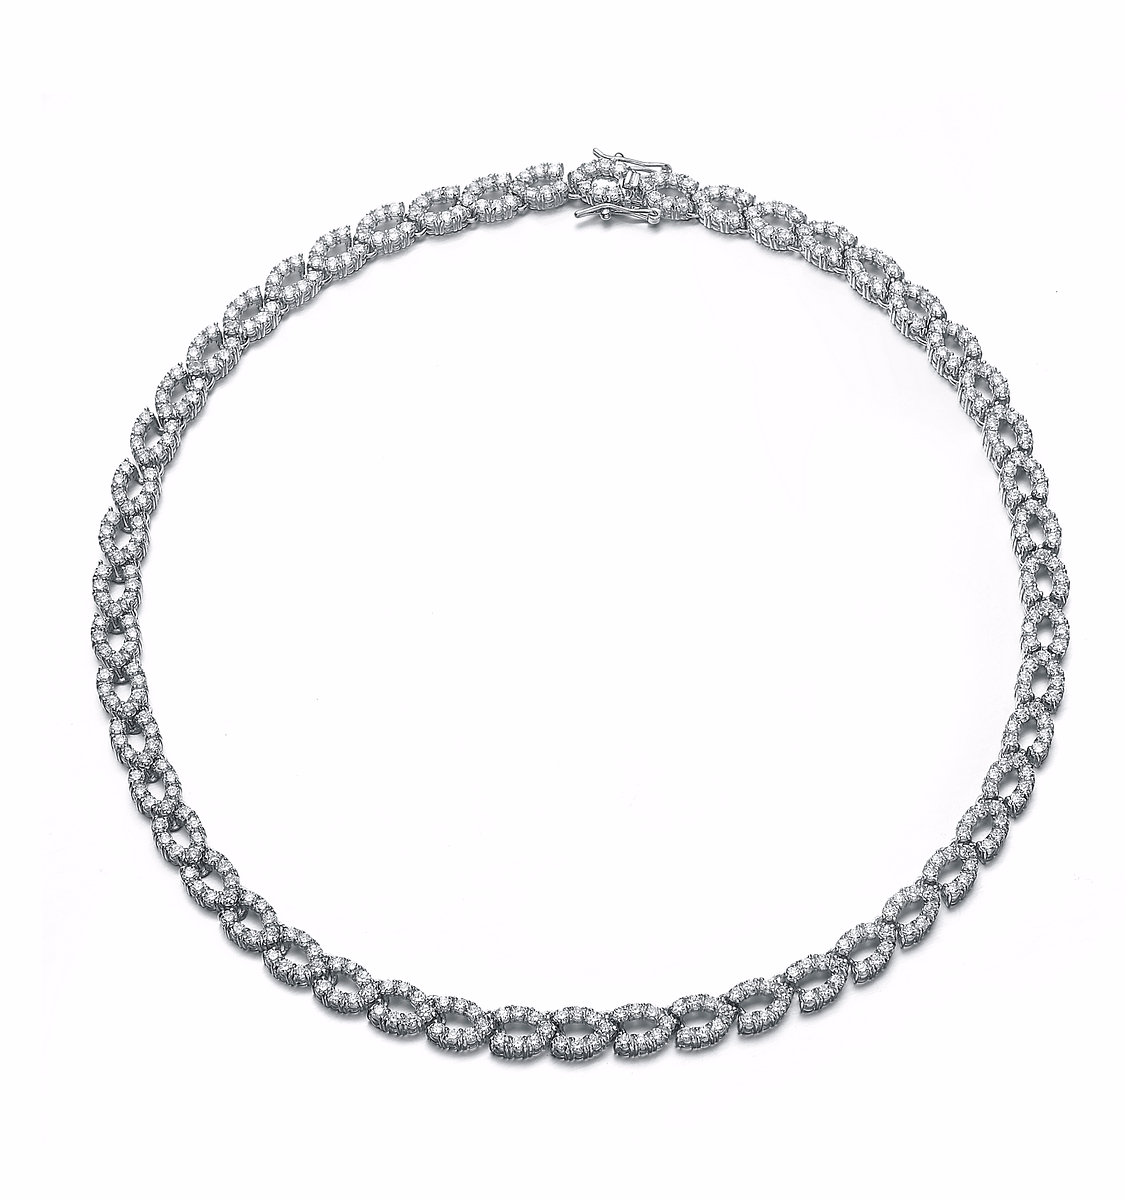 Rozzato Sterling Silver Luxurious Chain Necklace